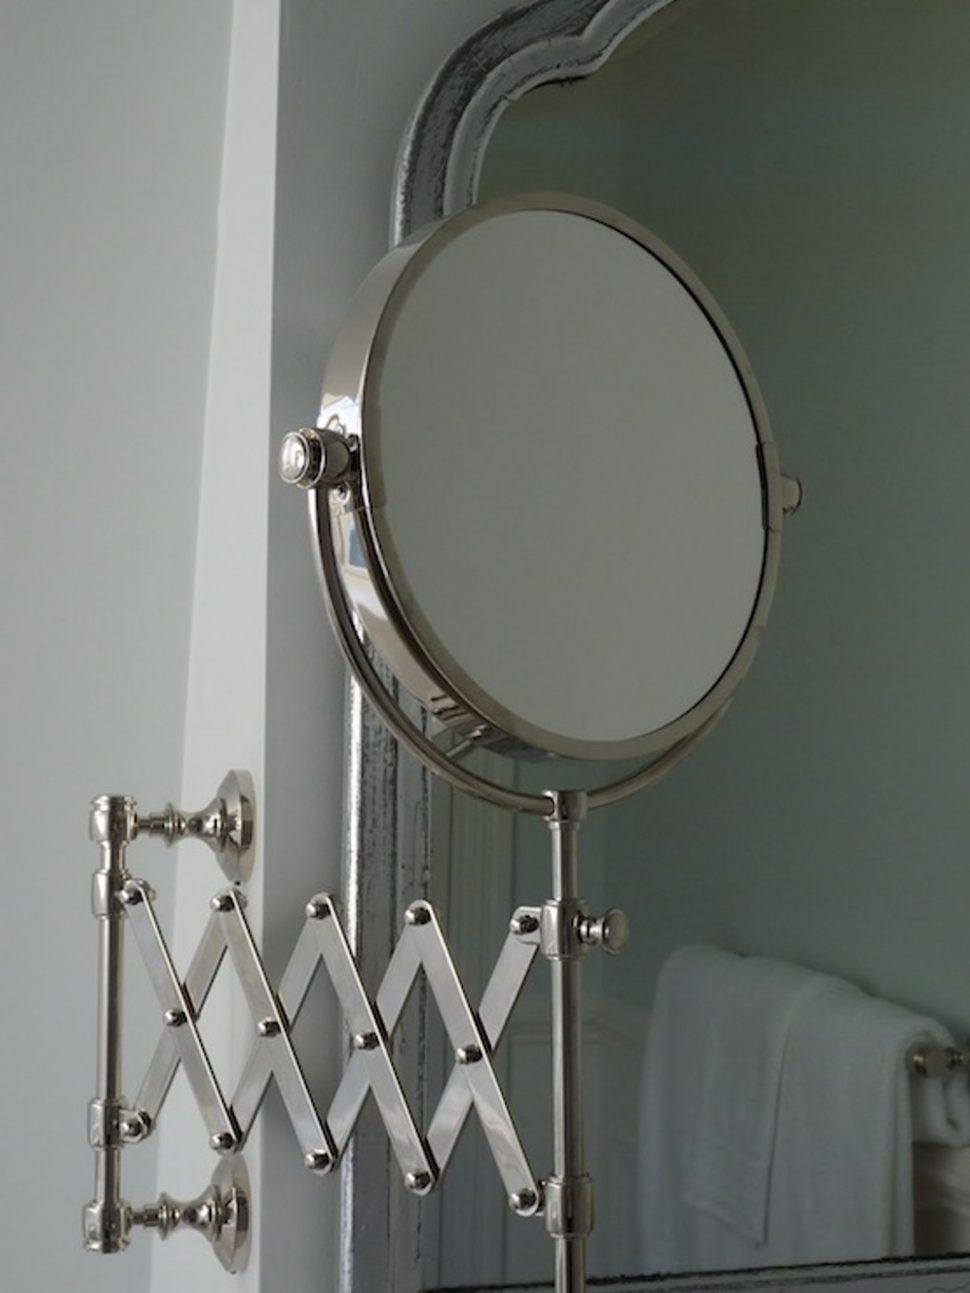 Bathroom Cabinets : Wall Mounted Magnifying Mirrors For Bathrooms Intended For Bathroom Extension Mirrors (Image 12 of 20)